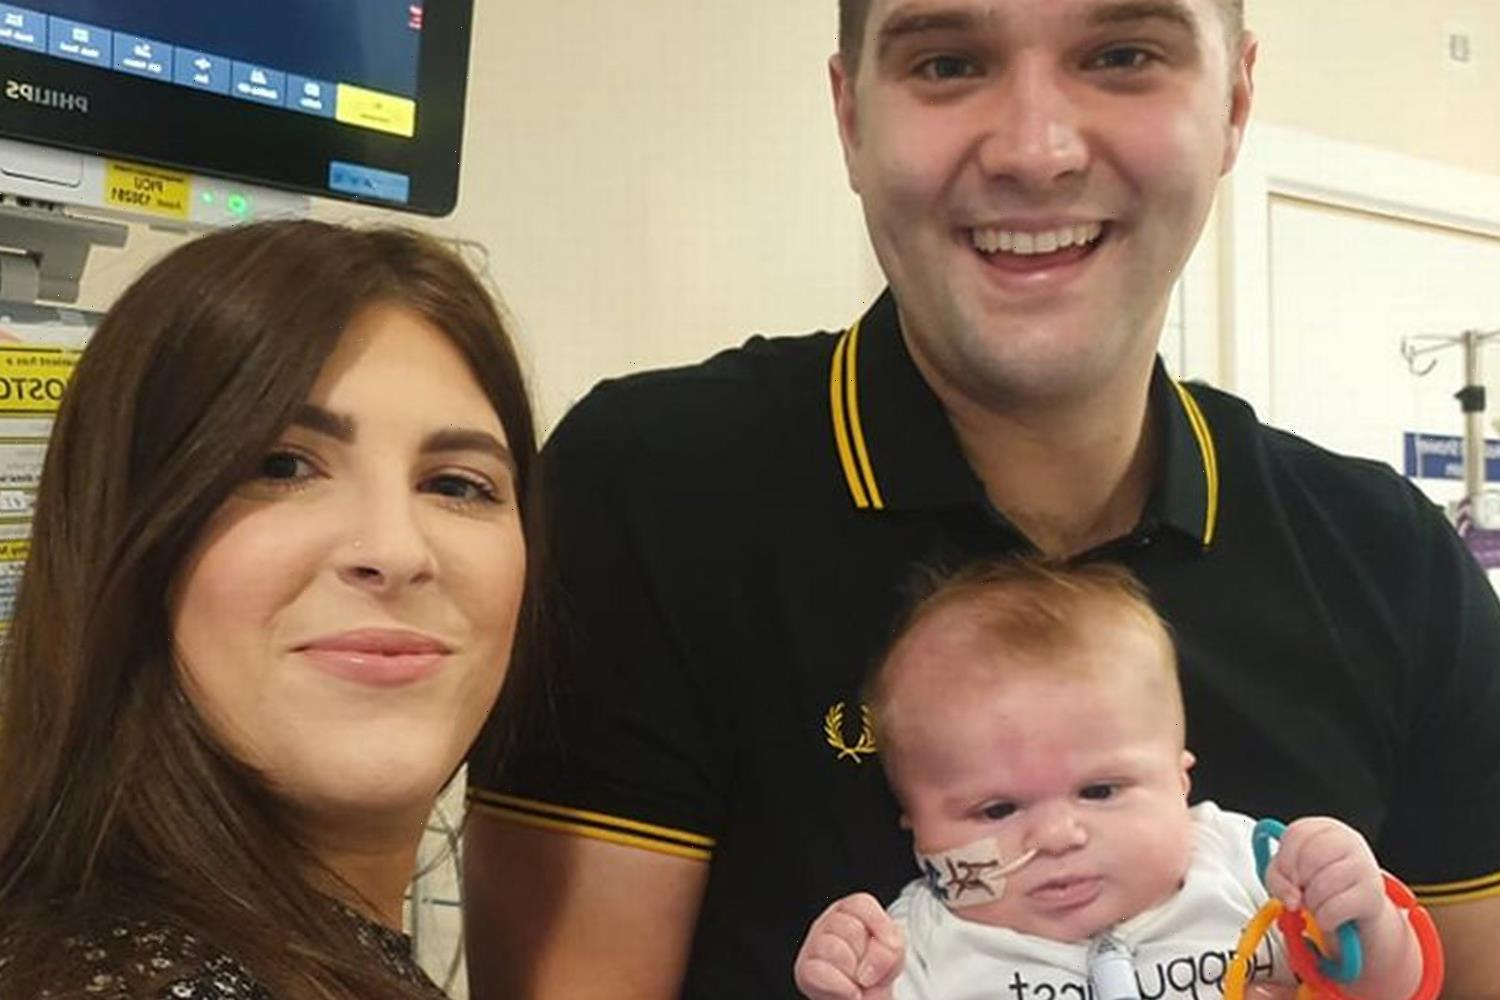 Baby boy born with 'no immune system' forced to isolate in hospital for 4 months as common cold could be fatal